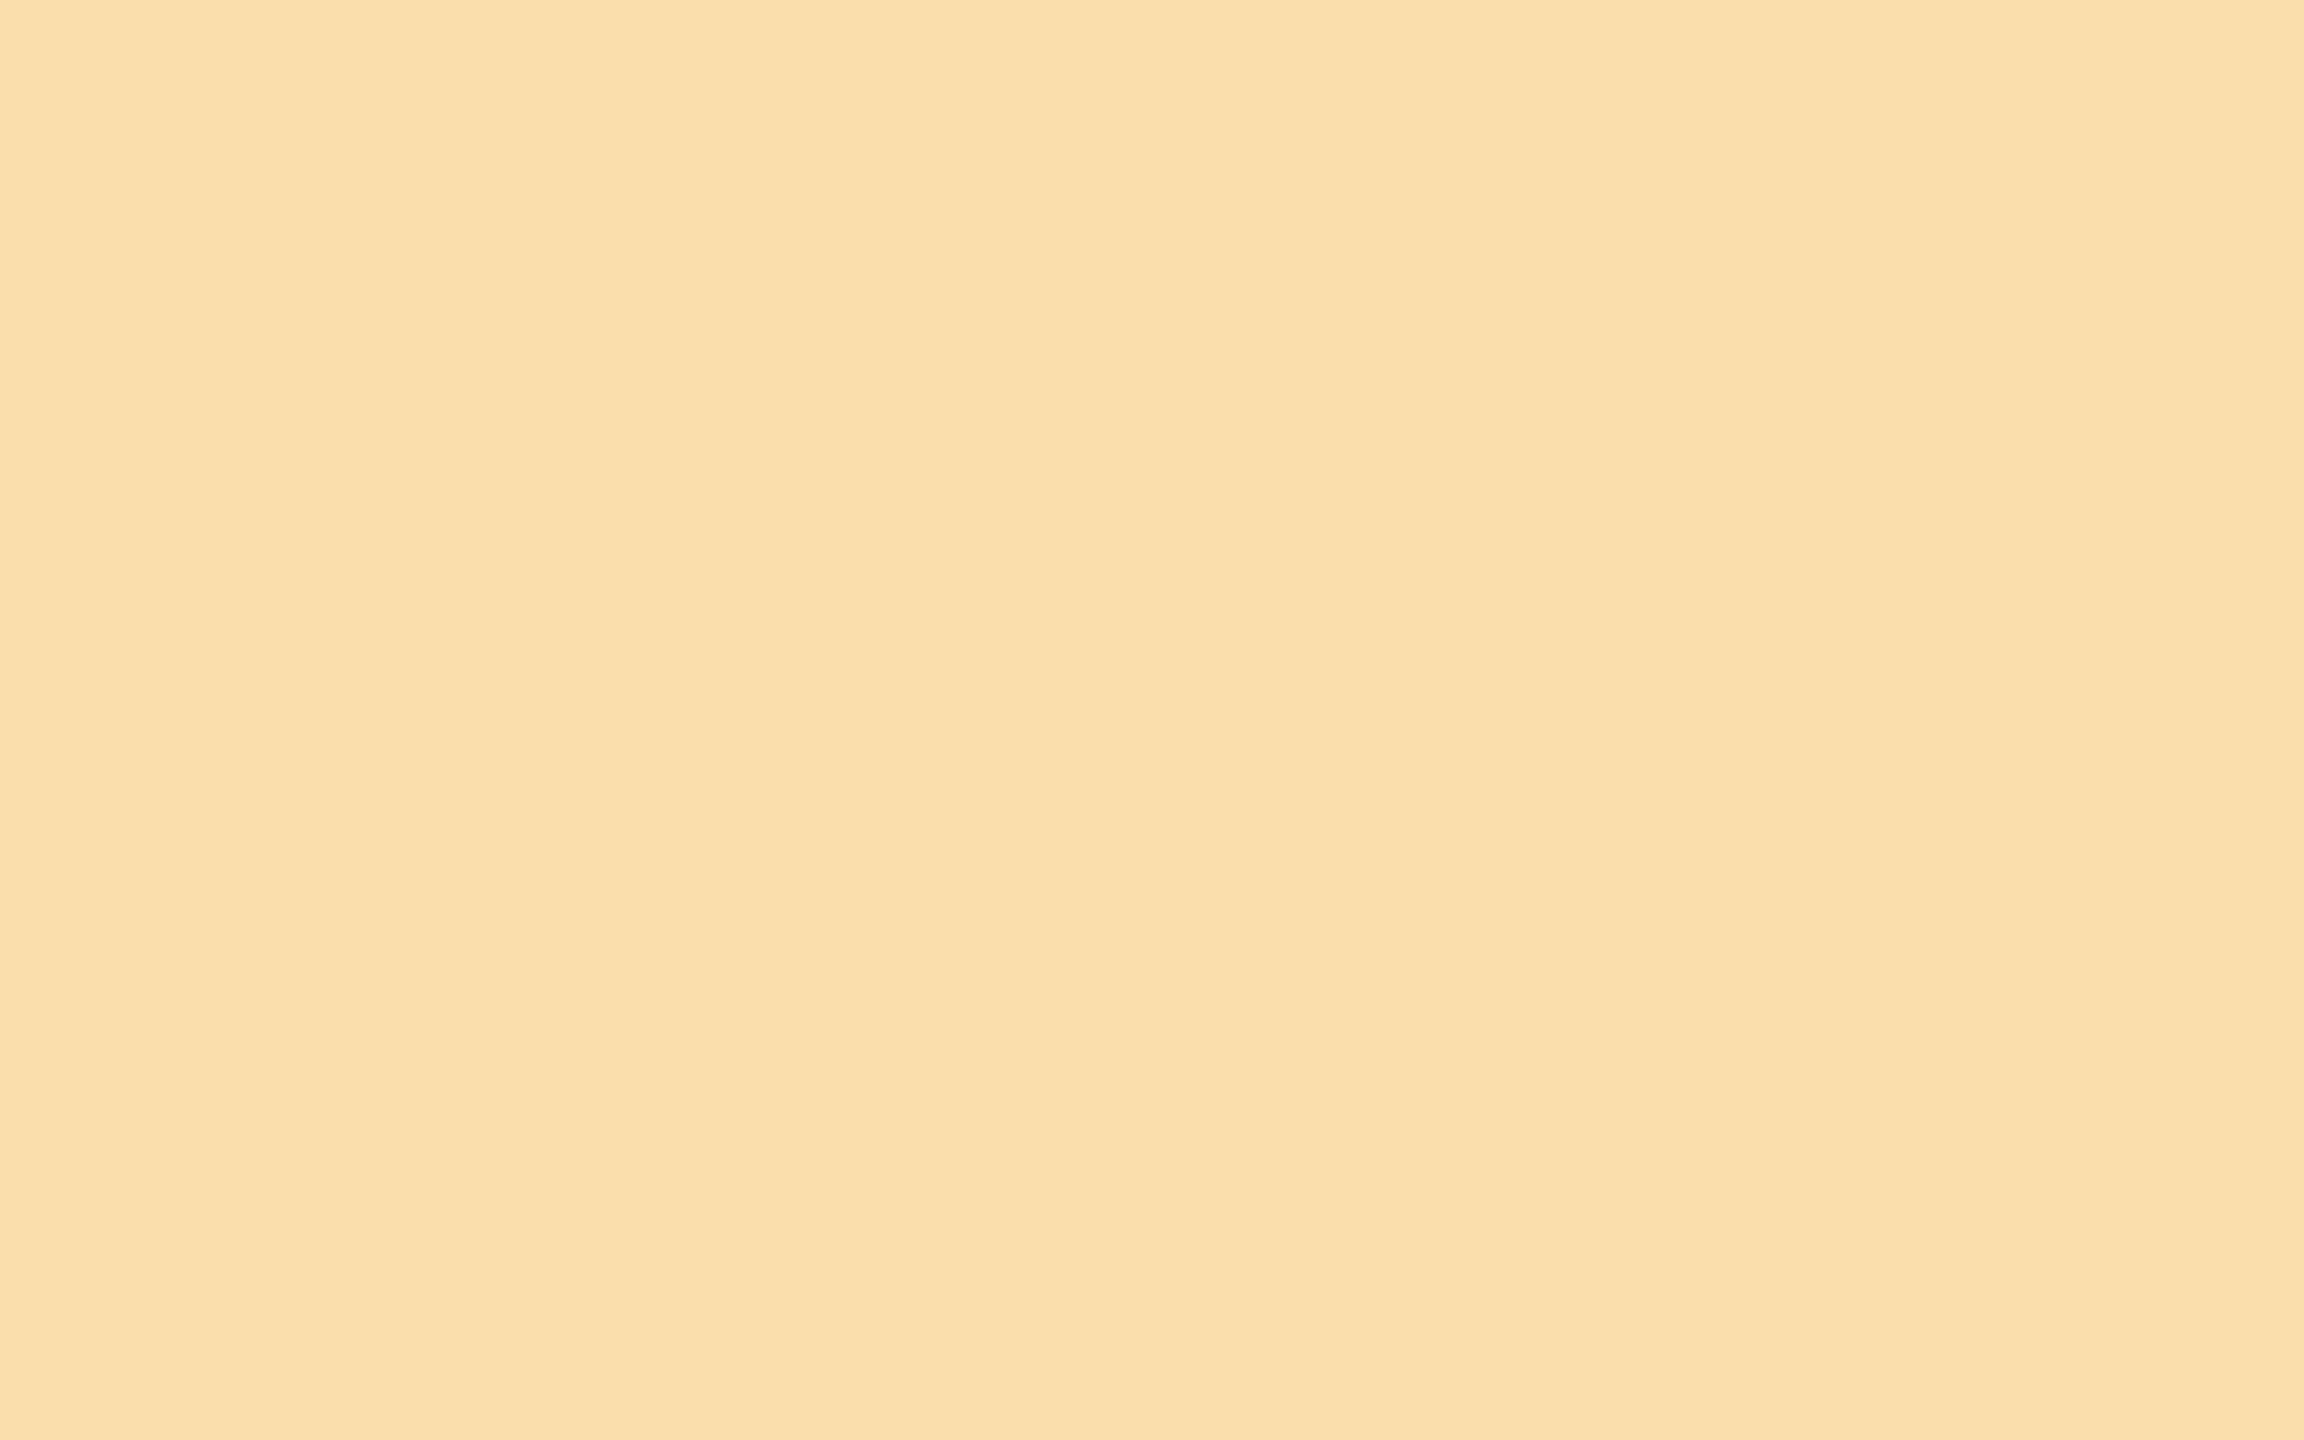 2304x1440 Peach-yellow Solid Color Background